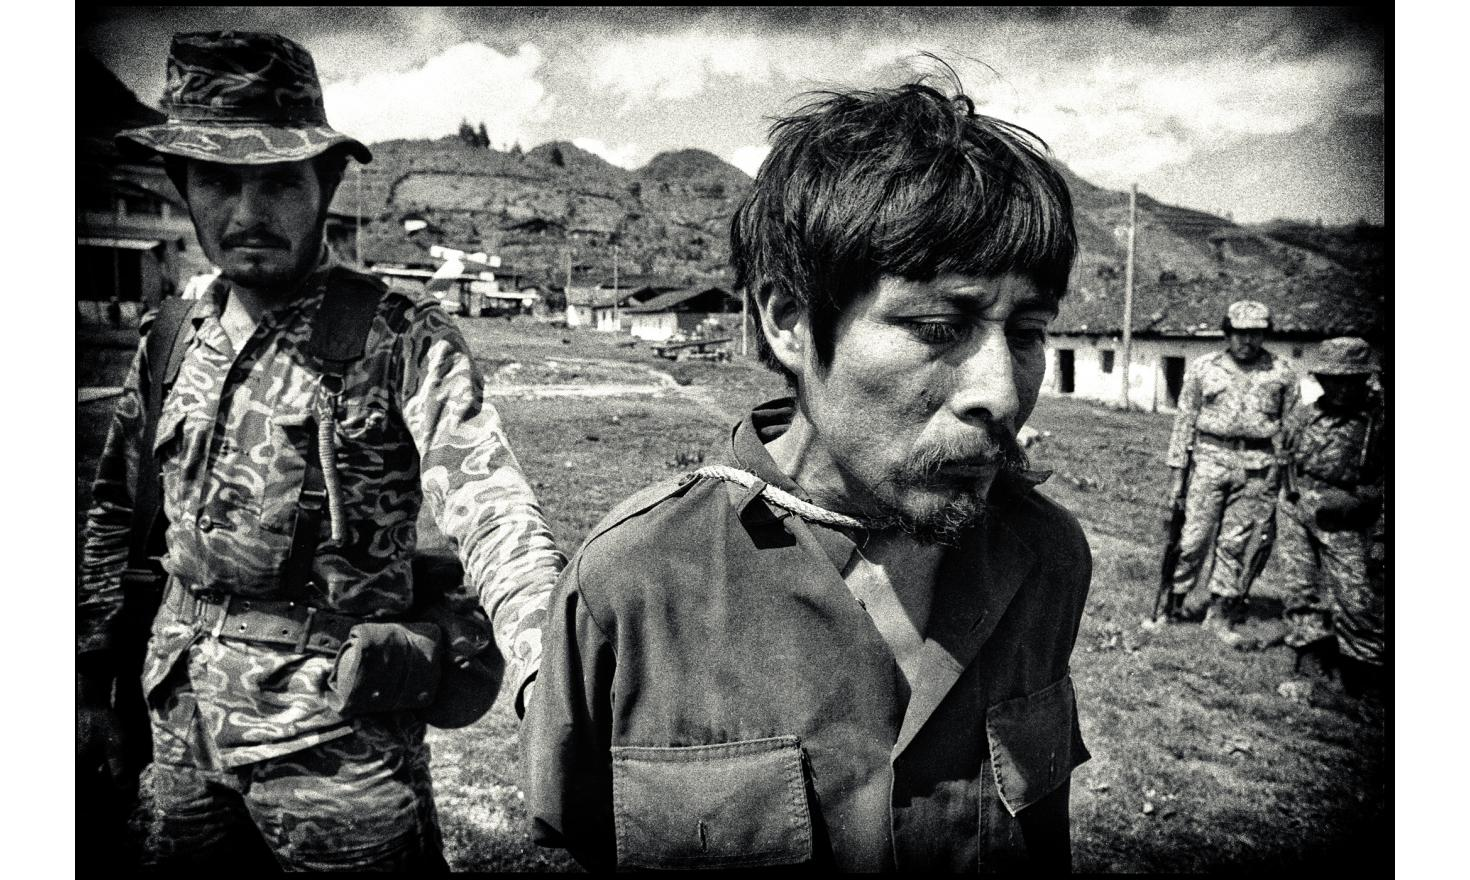 Arrested by the civil defense, a guerrilla is handled to the battalion commanded by Col. M. Benito Lucas Garcia, brother of the incubent president. A few years later , I was told by an NGO his family never heard of him. Chajul, Guatemala. March 23, 1982